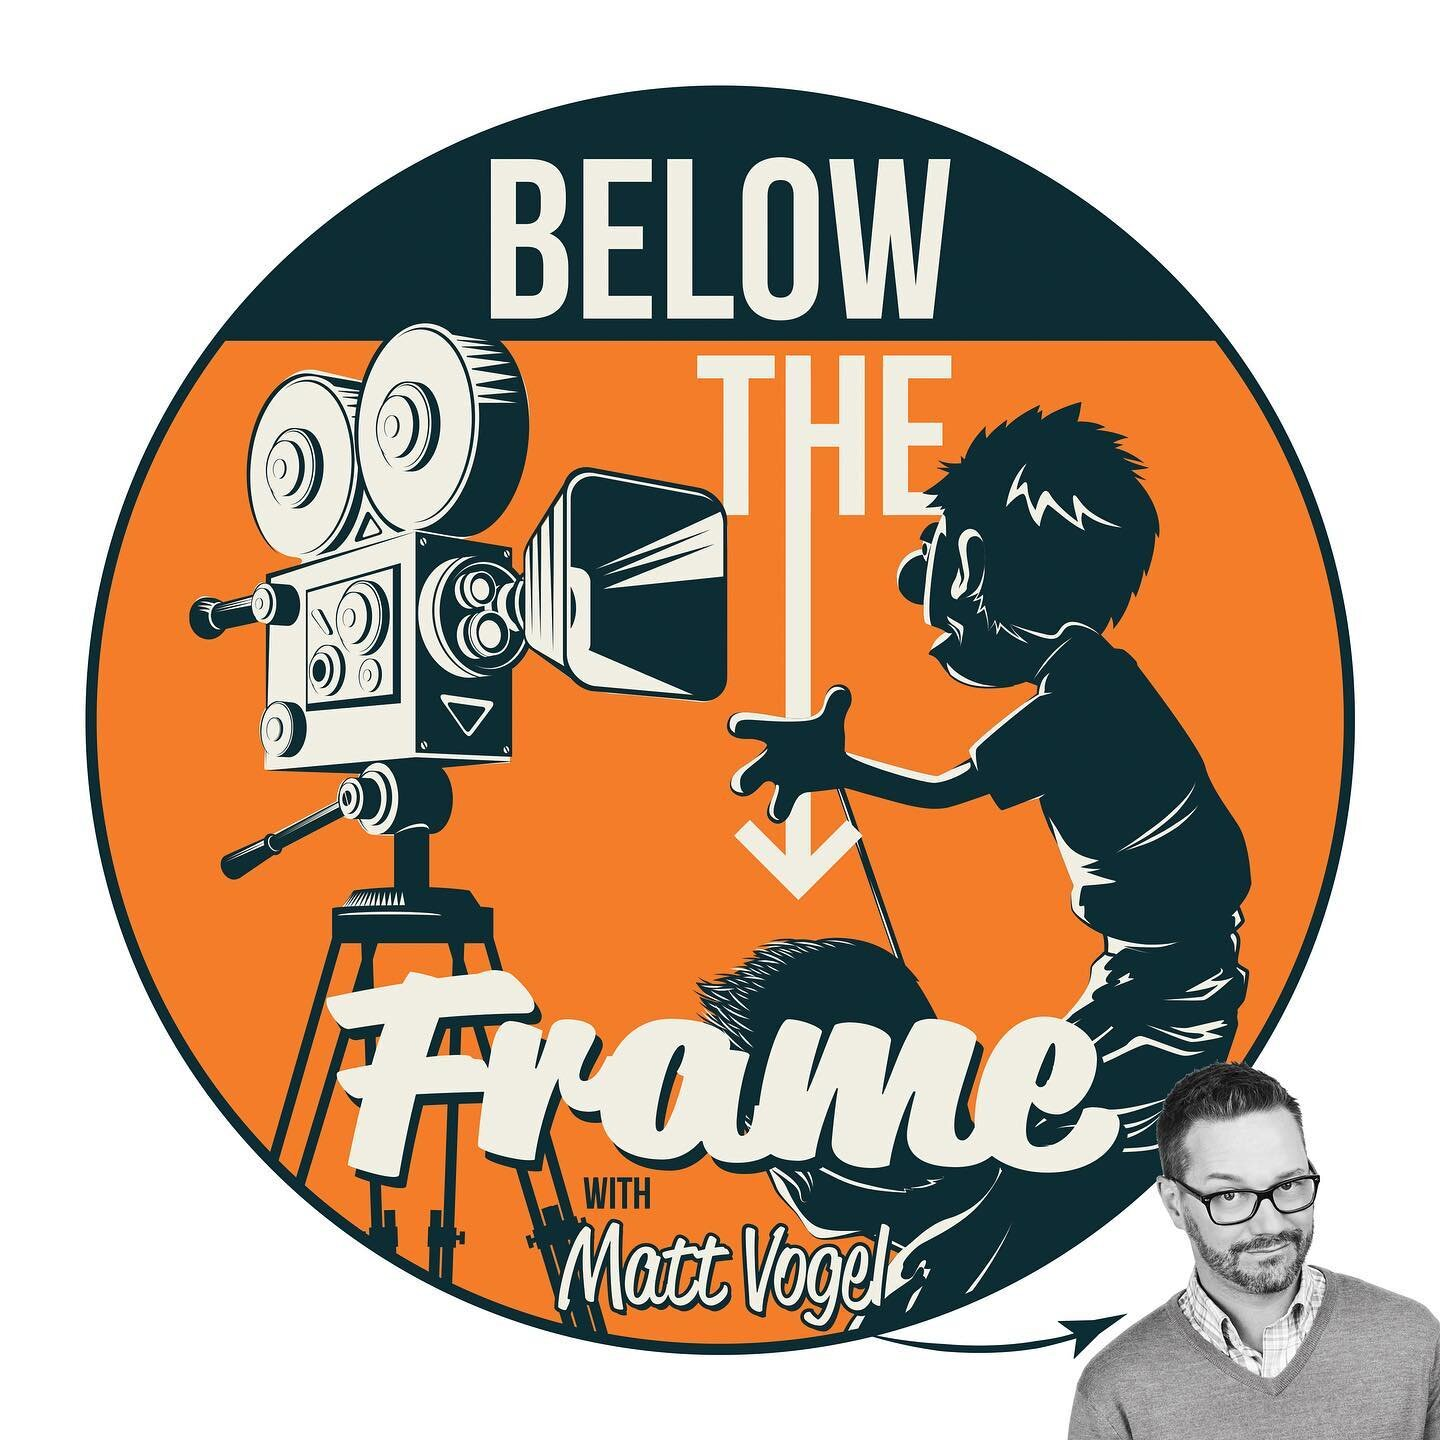 Lots of great guests already and more to come on Below The Frame with Matt Vogel — wherever you get your podcasts. . #internationalpodcastday  @belowtheframe